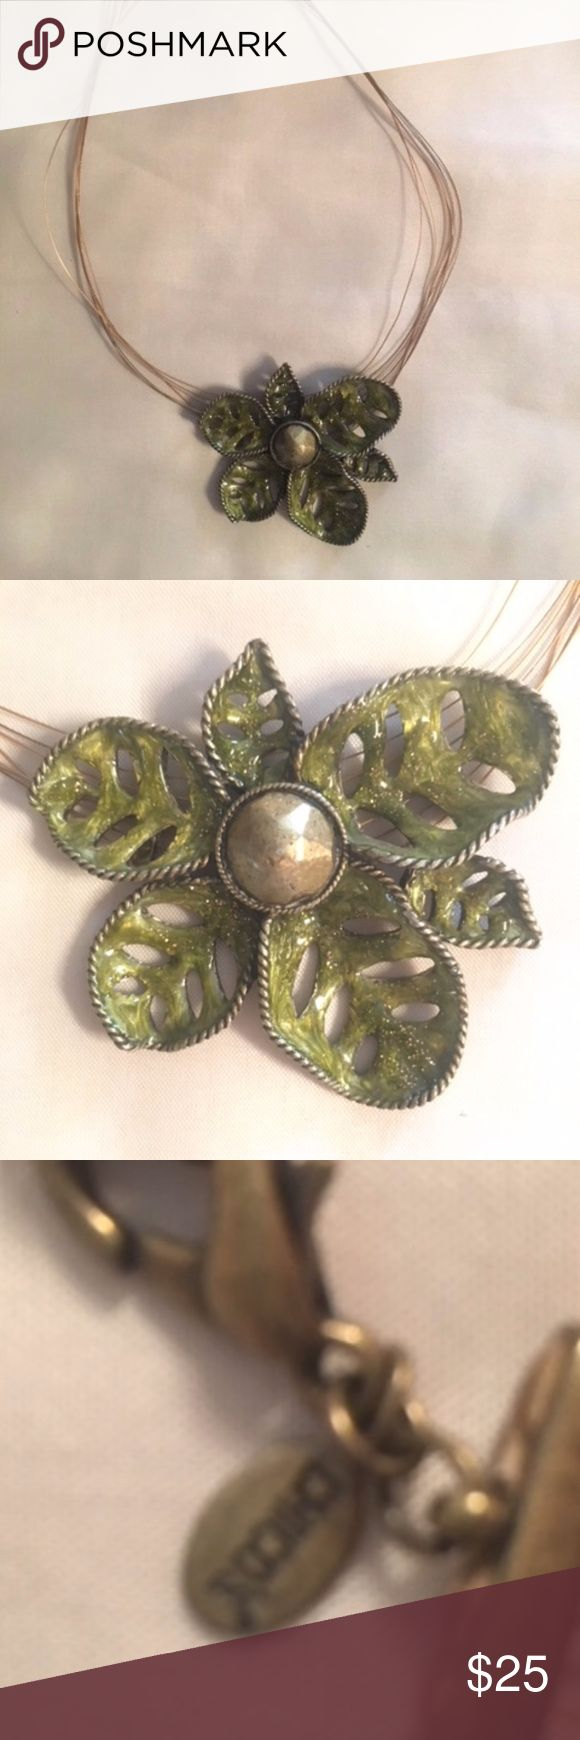 "Chico's Enamel Flower Necklace Fine wire strands with a claw clasp (Chico's tag) hold this lovely green enameled flower. Flower is statement sized - approx 2.5"" in length. Chico's Jewelry Necklaces"